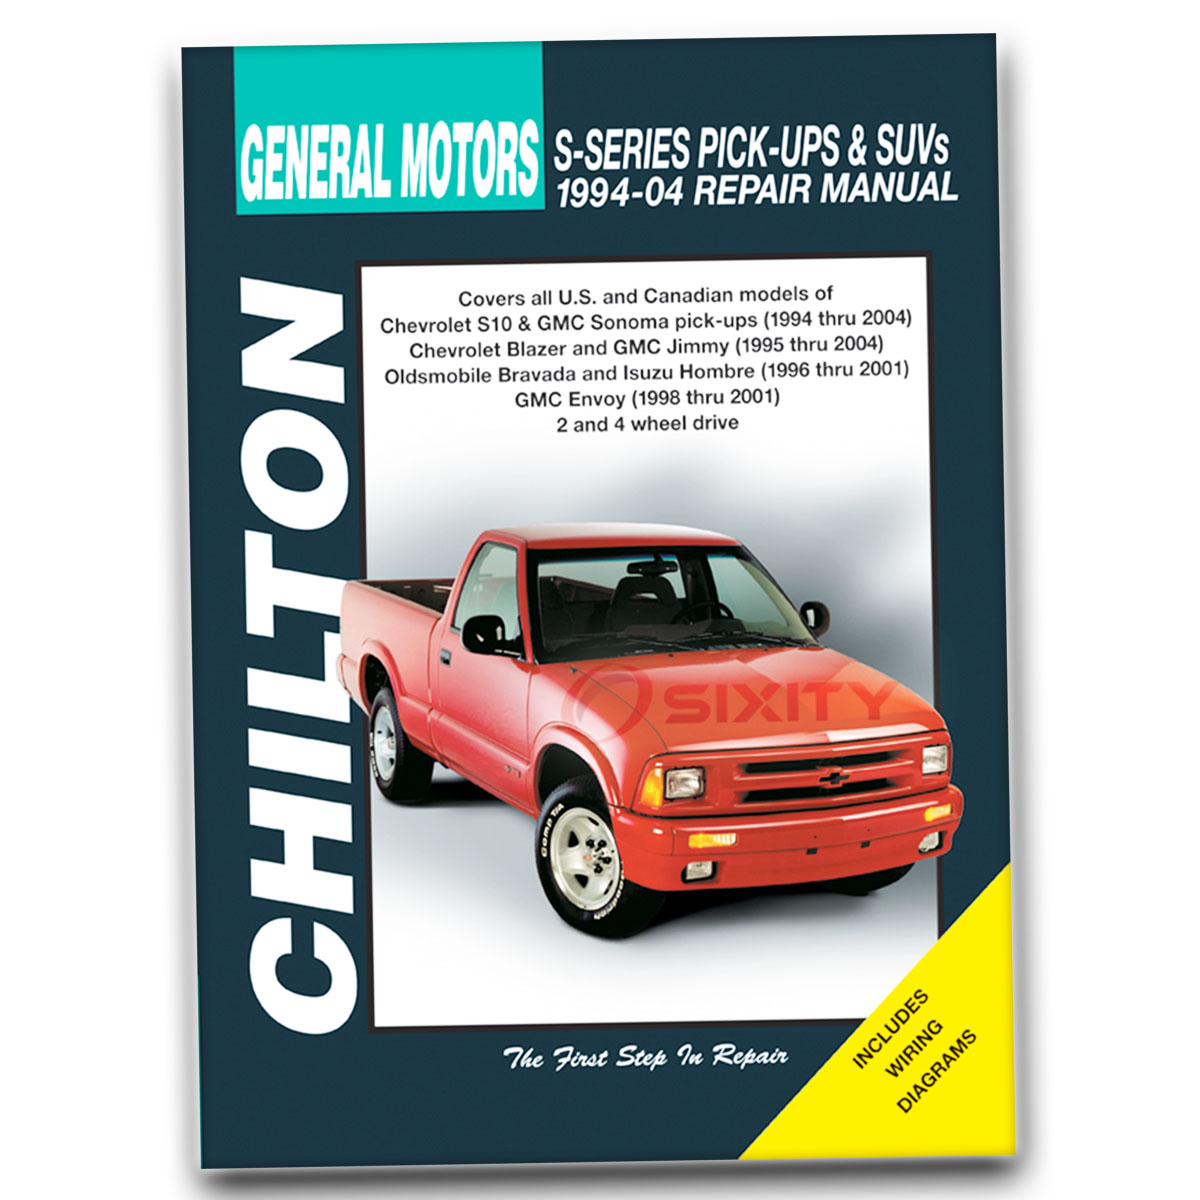 Chilton Repair Manual for Chevy S10 Blazer Tahoe LT Base Shop Service  Garage os